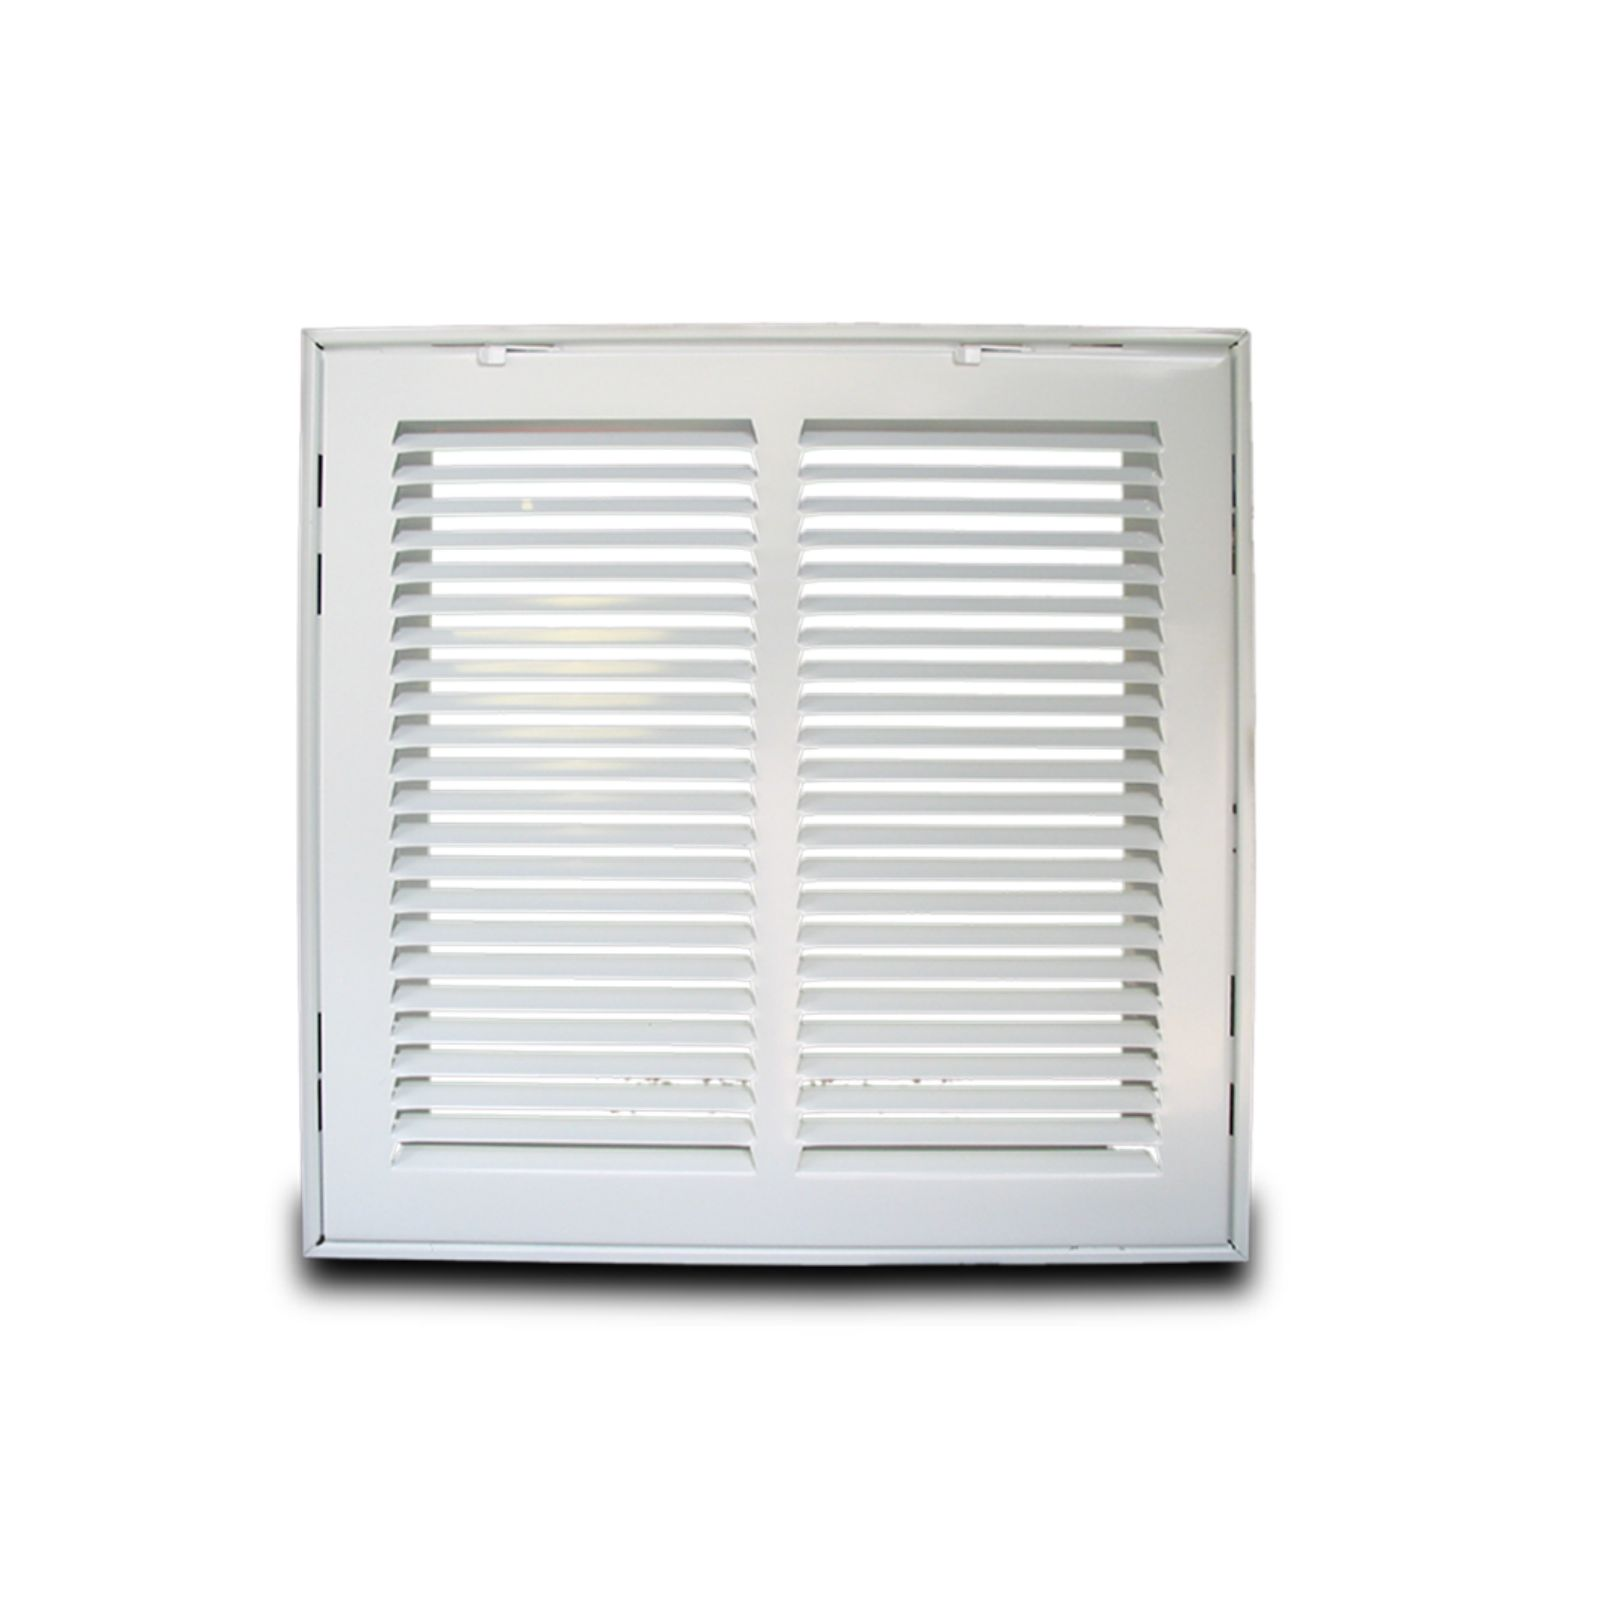 "Metal-Fab MFRFG1424W - Metal Fab Return Filter Grille, White,  14"" X 24"""